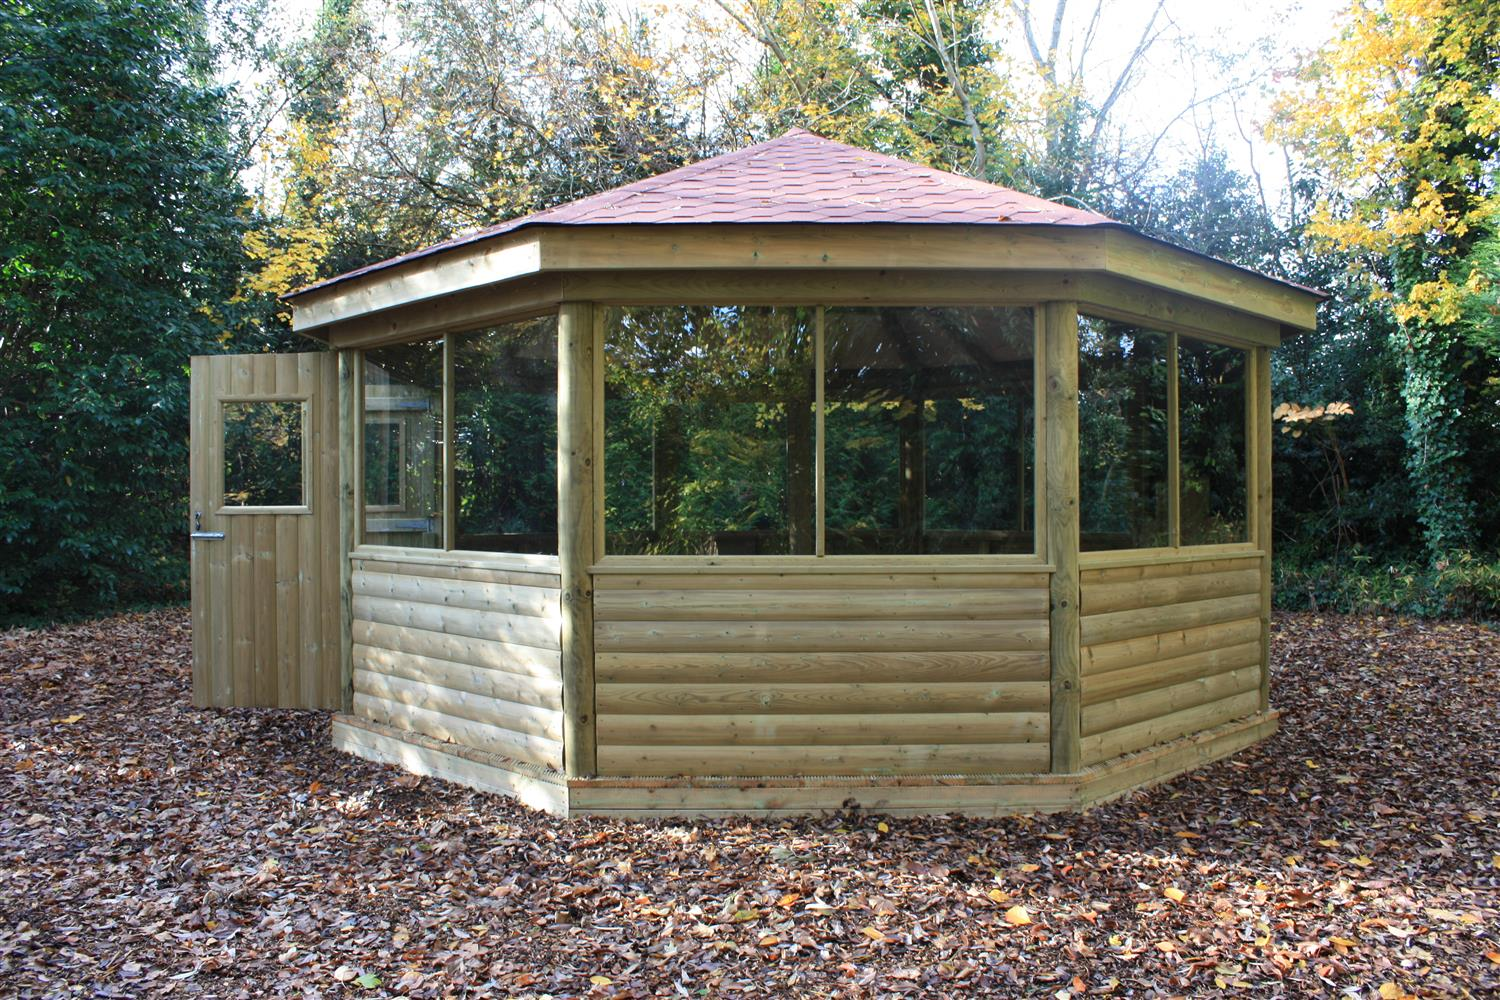 Swaythling primary school 39 s outdoor classroom pentagon play for Large wooden gazebos